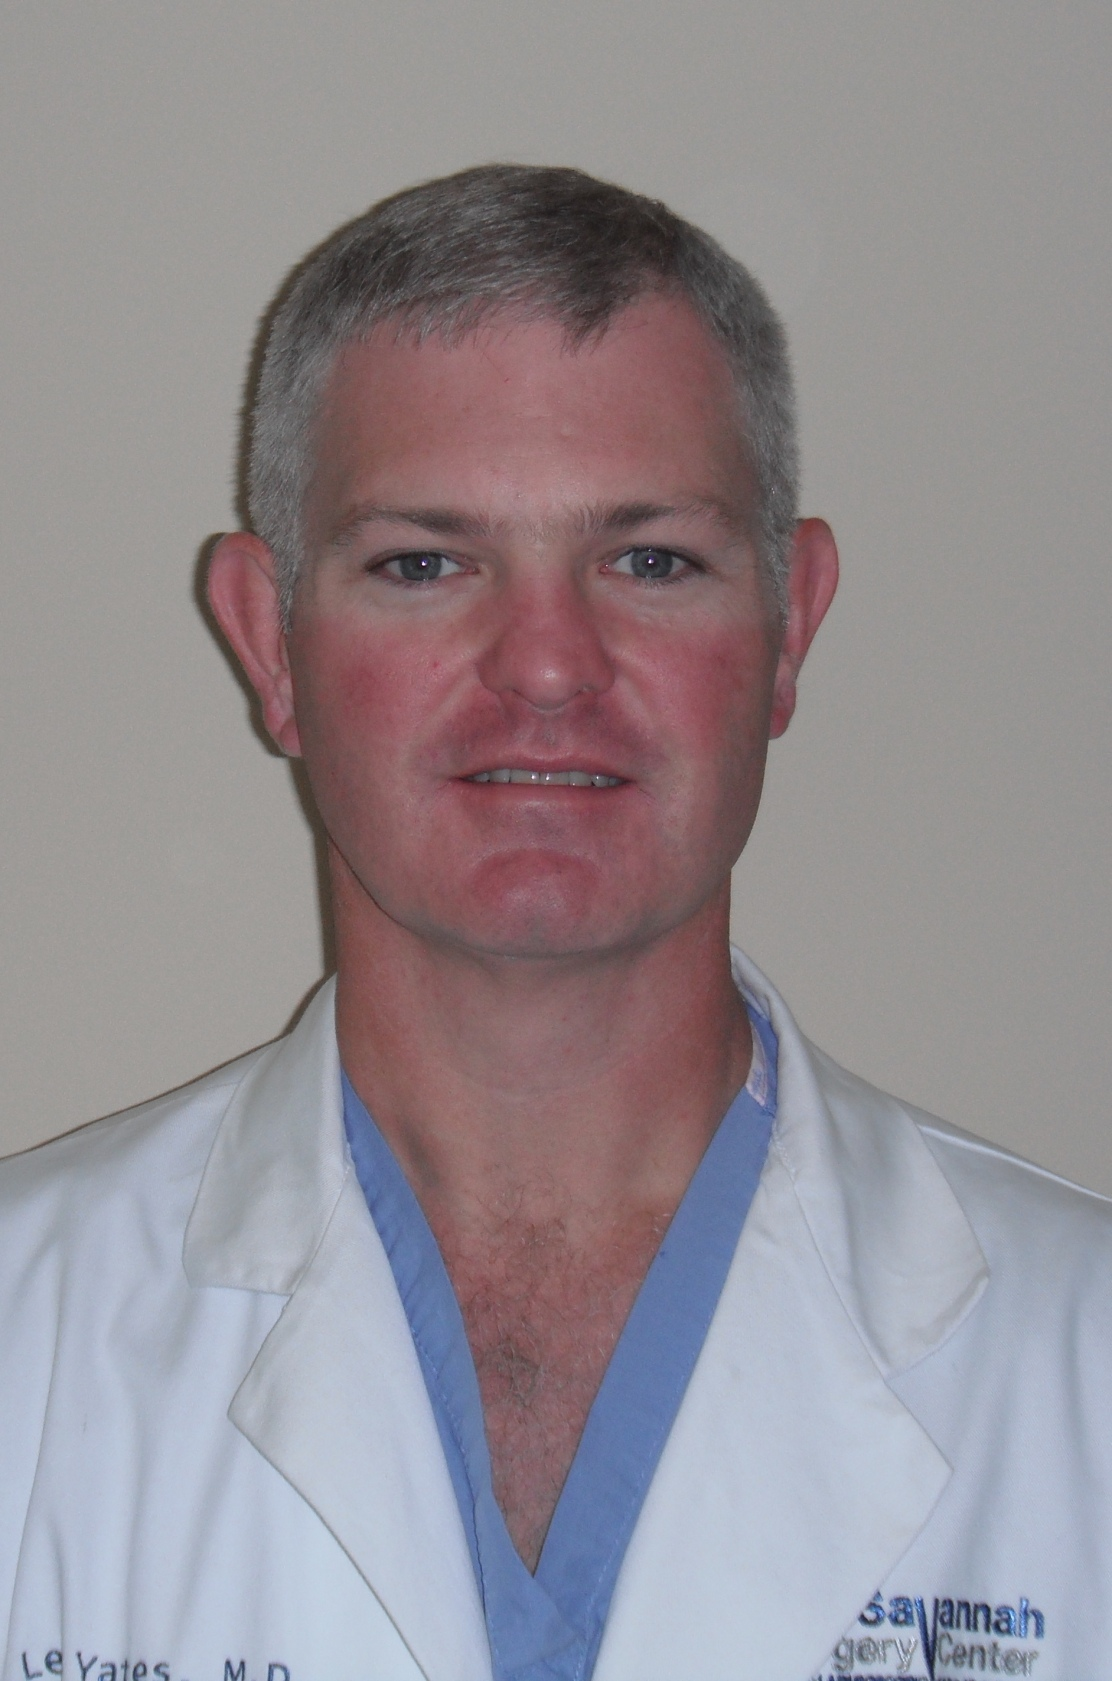 Dr. Lee Yates - Savannah Surgery Center.JPG